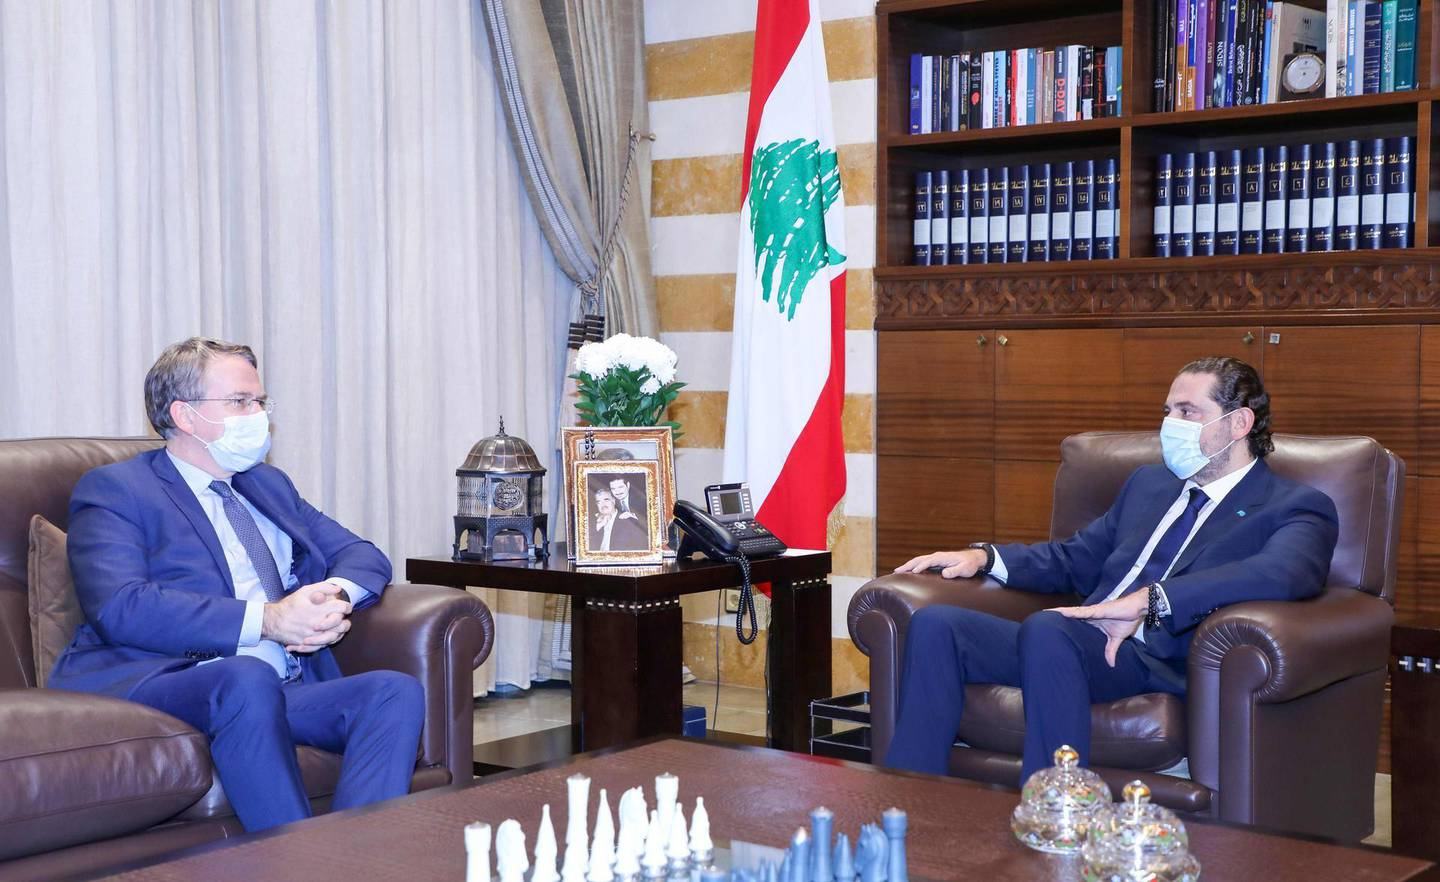 """A handout picture provided by the Lebanese photo agency Dalati and Nohra on November 12, 2020, shows prime minister-designate Saad Hariri (R) meeting with Patrick Durel (R), an adviser to French President Emmanuel Macron, in the capital Beirut. === RESTRICTED TO EDITORIAL USE - MANDATORY CREDIT """"AFP PHOTO / HO / DALATI AND NOHRA"""" - NO MARKETING - NO ADVERTISING CAMPAIGNS - DISTRIBUTED AS A SERVICE TO CLIENTS ===  / AFP / DALATI AND NOHRA / STRINGER / === RESTRICTED TO EDITORIAL USE - MANDATORY CREDIT """"AFP PHOTO / HO / DALATI AND NOHRA"""" - NO MARKETING - NO ADVERTISING CAMPAIGNS - DISTRIBUTED AS A SERVICE TO CLIENTS ==="""